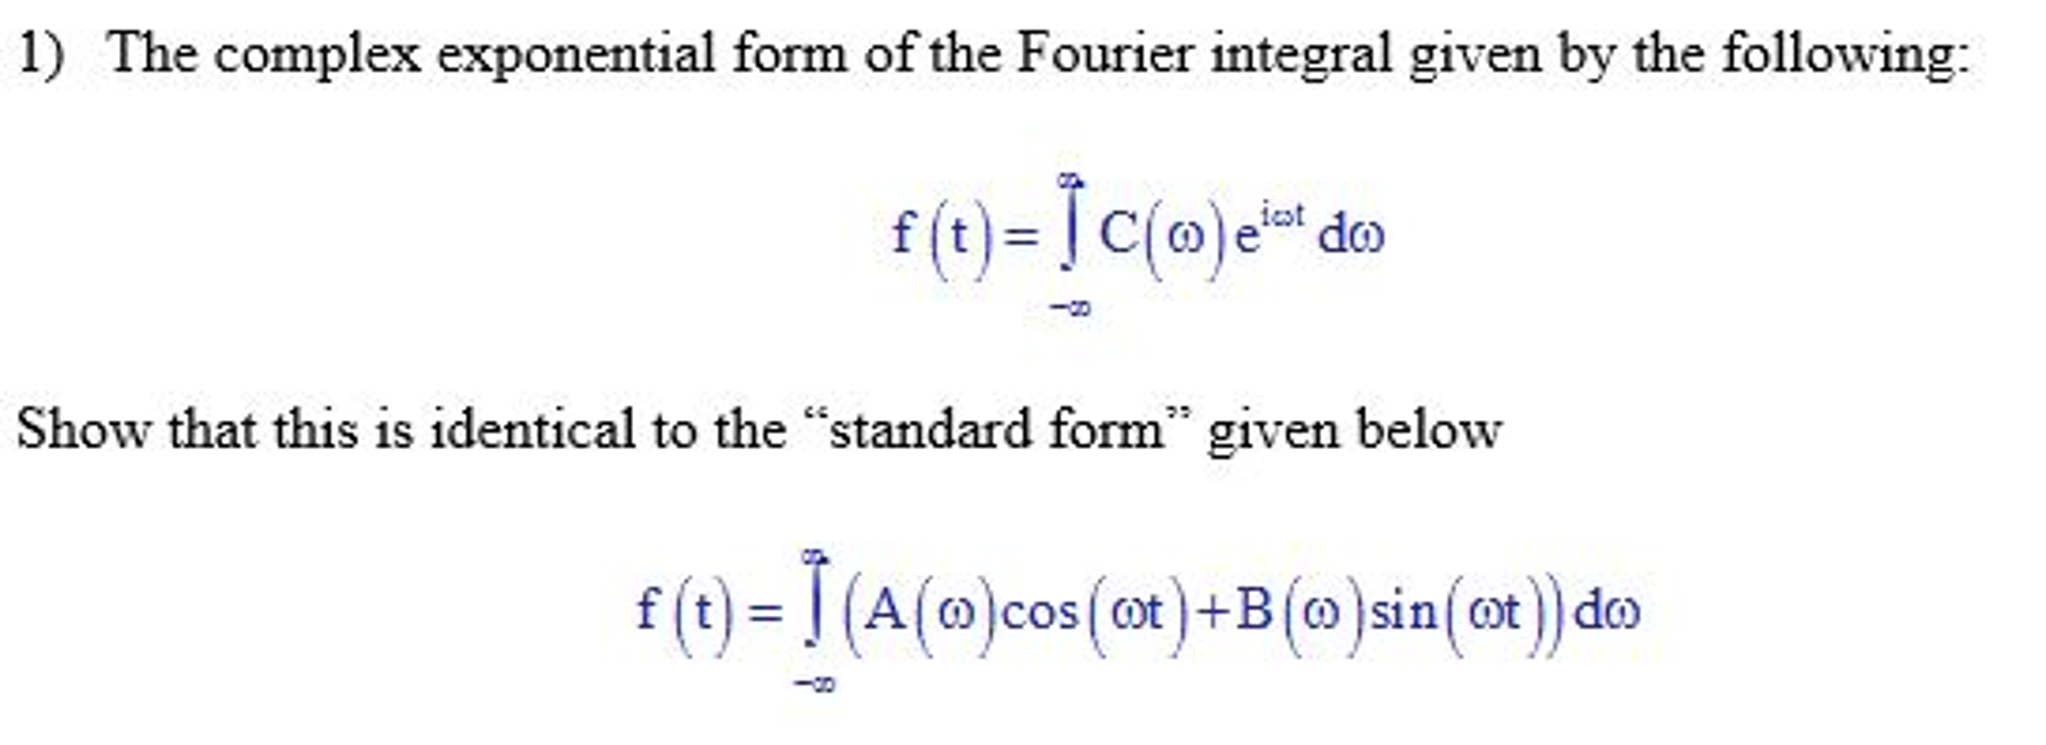 Mechanical engineering archive october 30 2016 chegg the complex exponential form of the fourier integr falaconquin